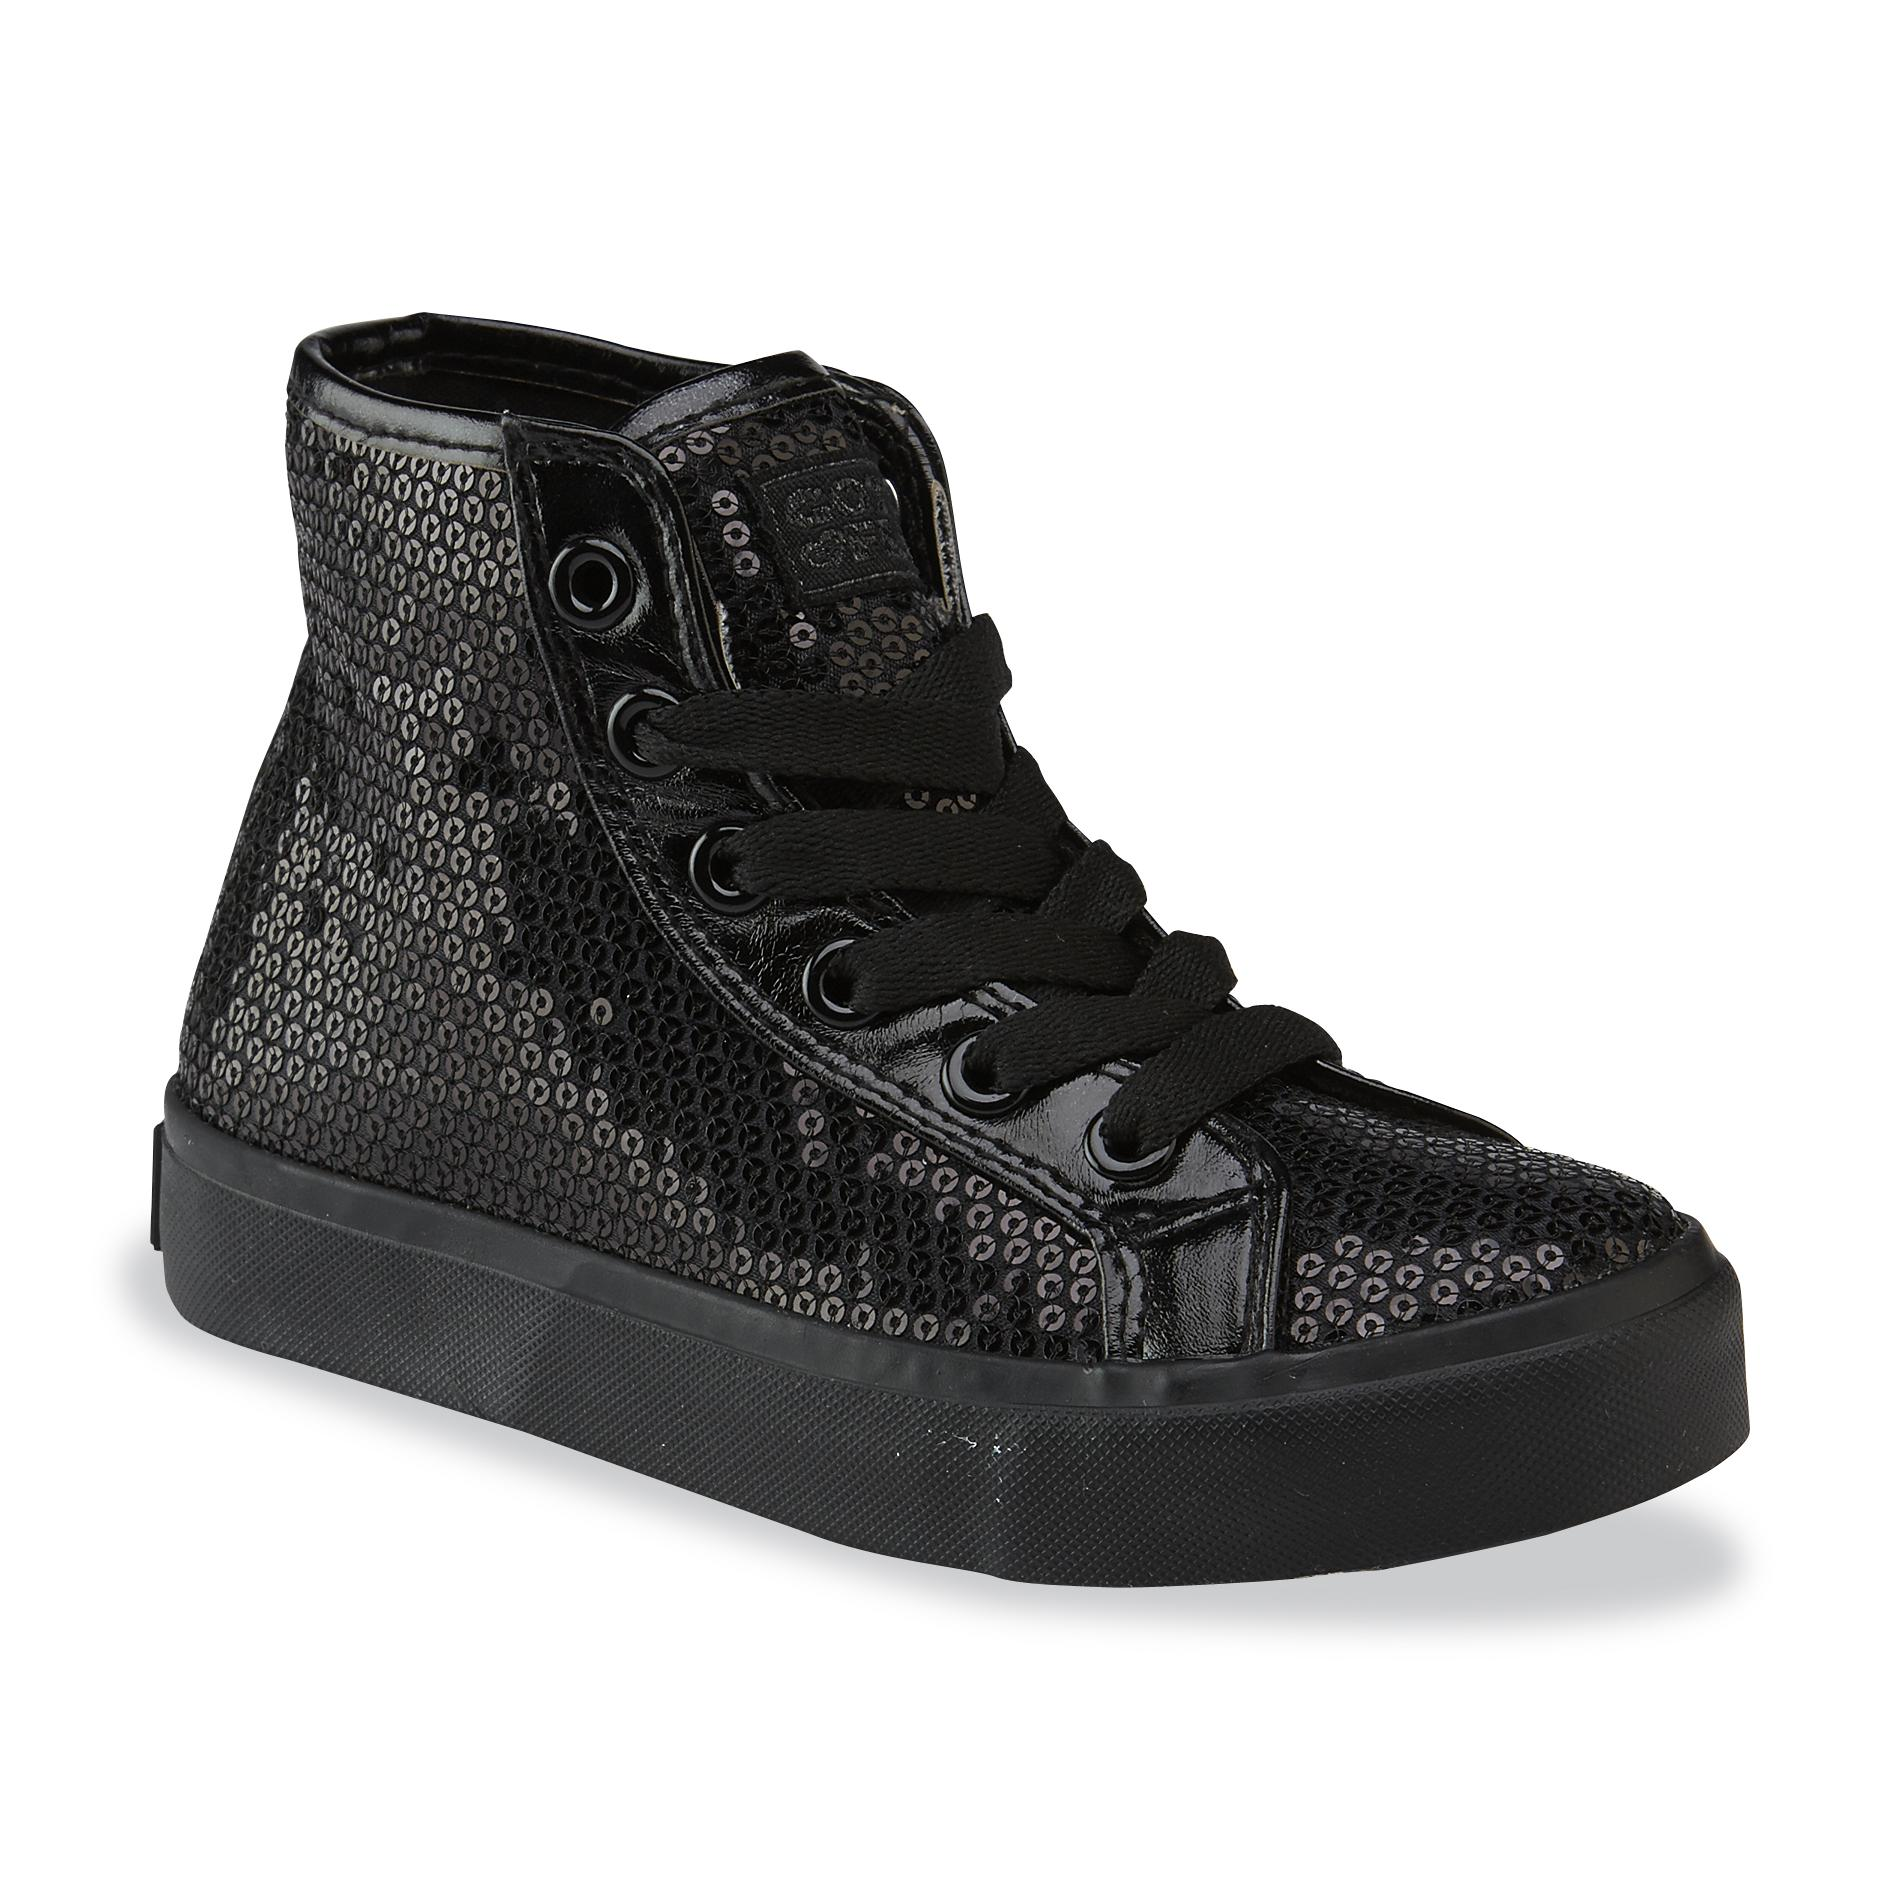 Make a statement in these high top lace-up sequin sneakers! Features comfortable cushioned insoles and ventilated arches to keep feet cool. Perfect for performances or street wear!/5(5).